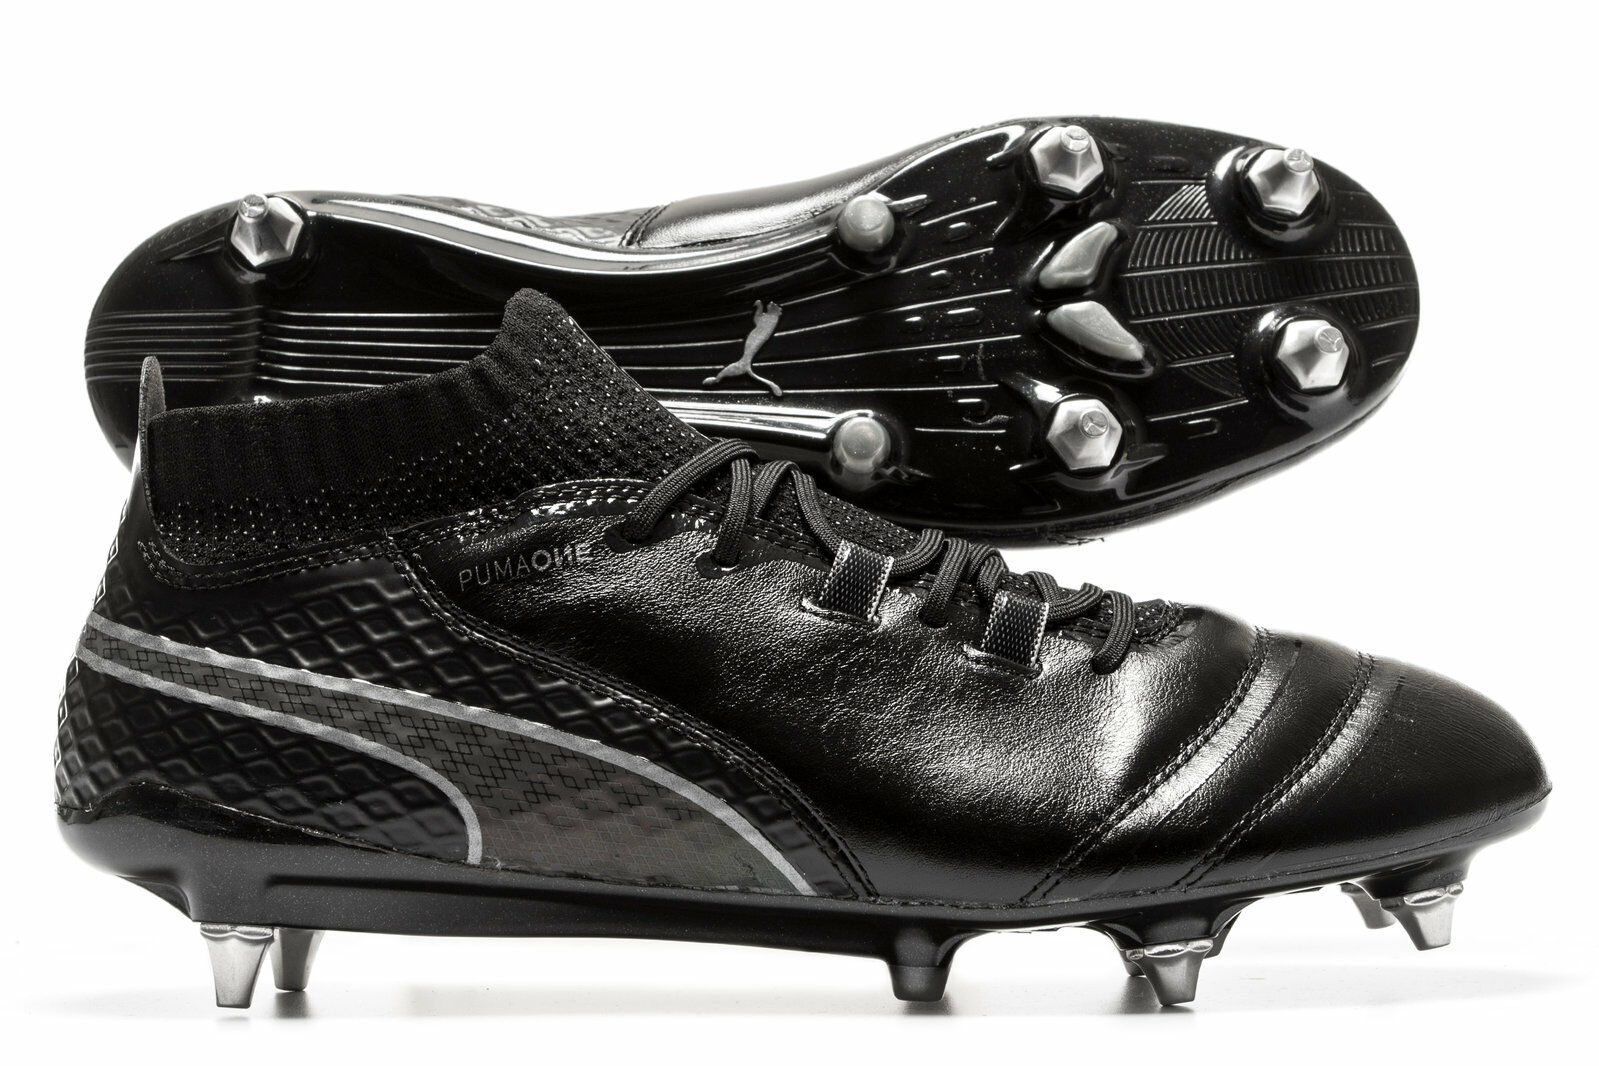 Puma  Herren One 17.1 MX SG Football Stiefel Schuhes Sports Training